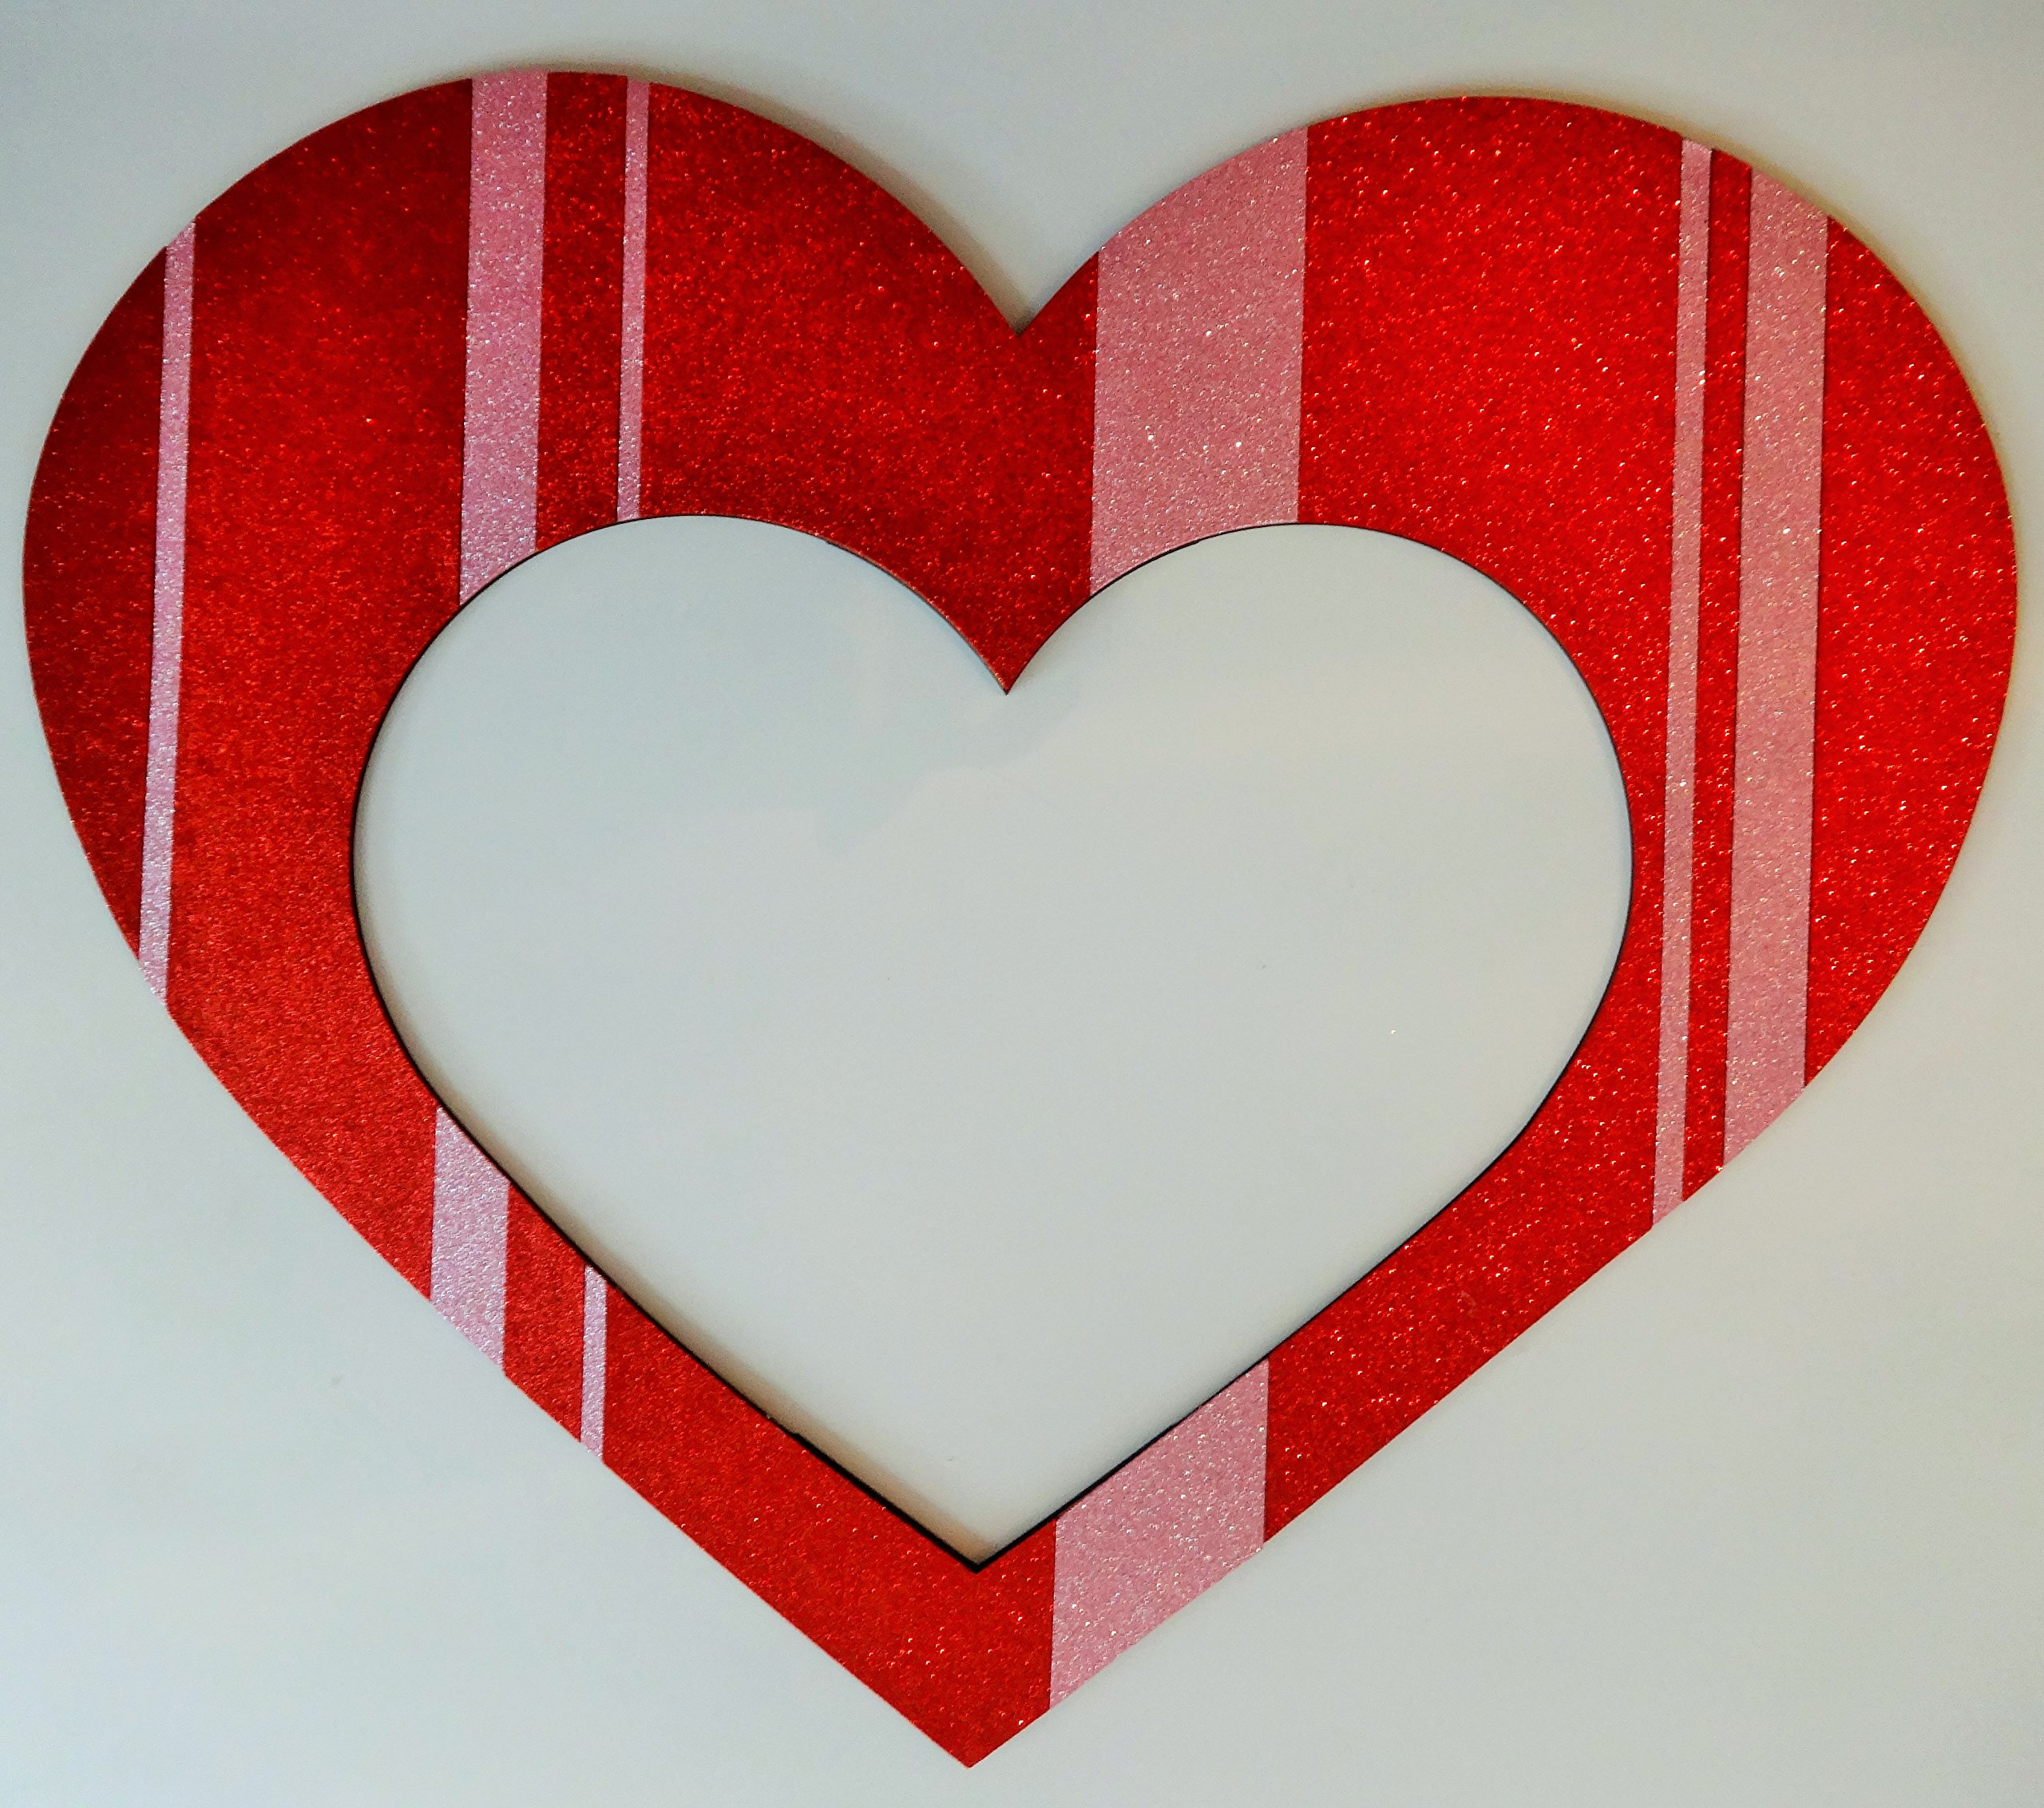 1 Pc Photo Booth Party Props No Sticks Attached Valentines Day Heart Frame Cute MDF Frame Red and Pink